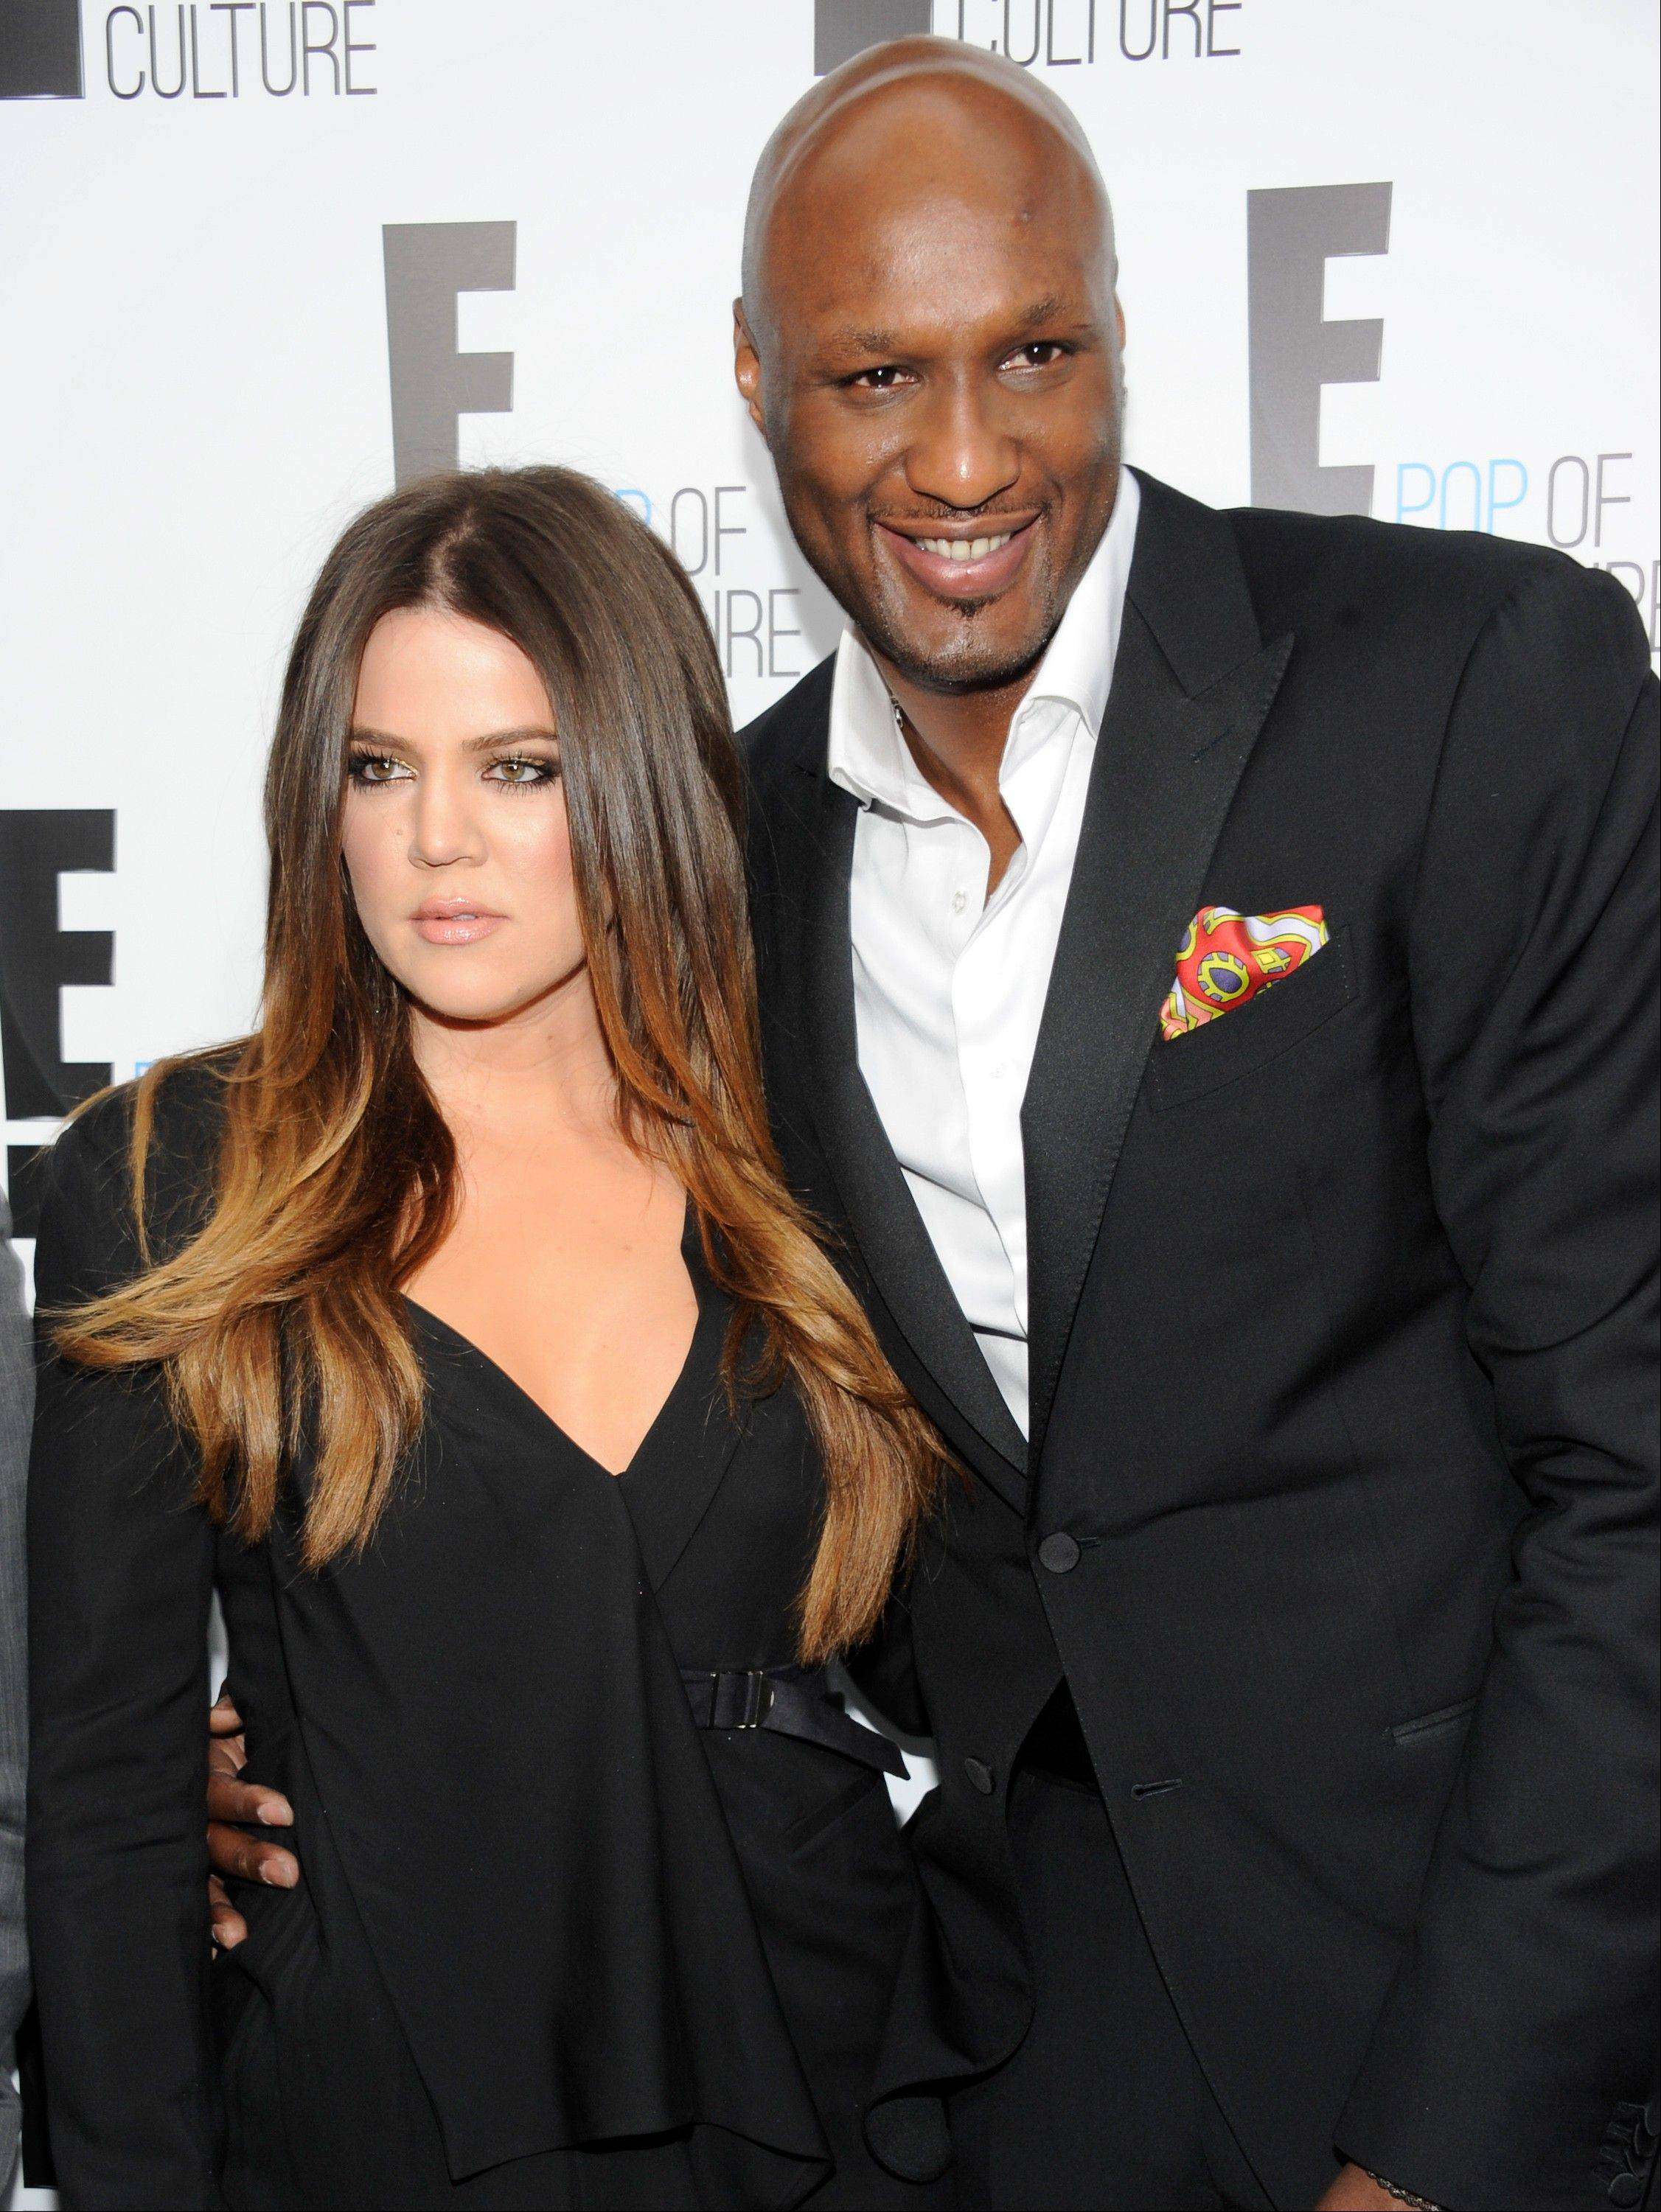 Khloe Kardashian Odom and Lamar Odom pose at an E! Network event in New York. Odom is breaking his silence with his first post on Twitter since the NBA star was arrested and charged with driving under the influence last month. Odom tweeted �Seeing the snakes� on Tuesday night, Sept. 24, 2013, in his first post since his Aug. 30 arrest.